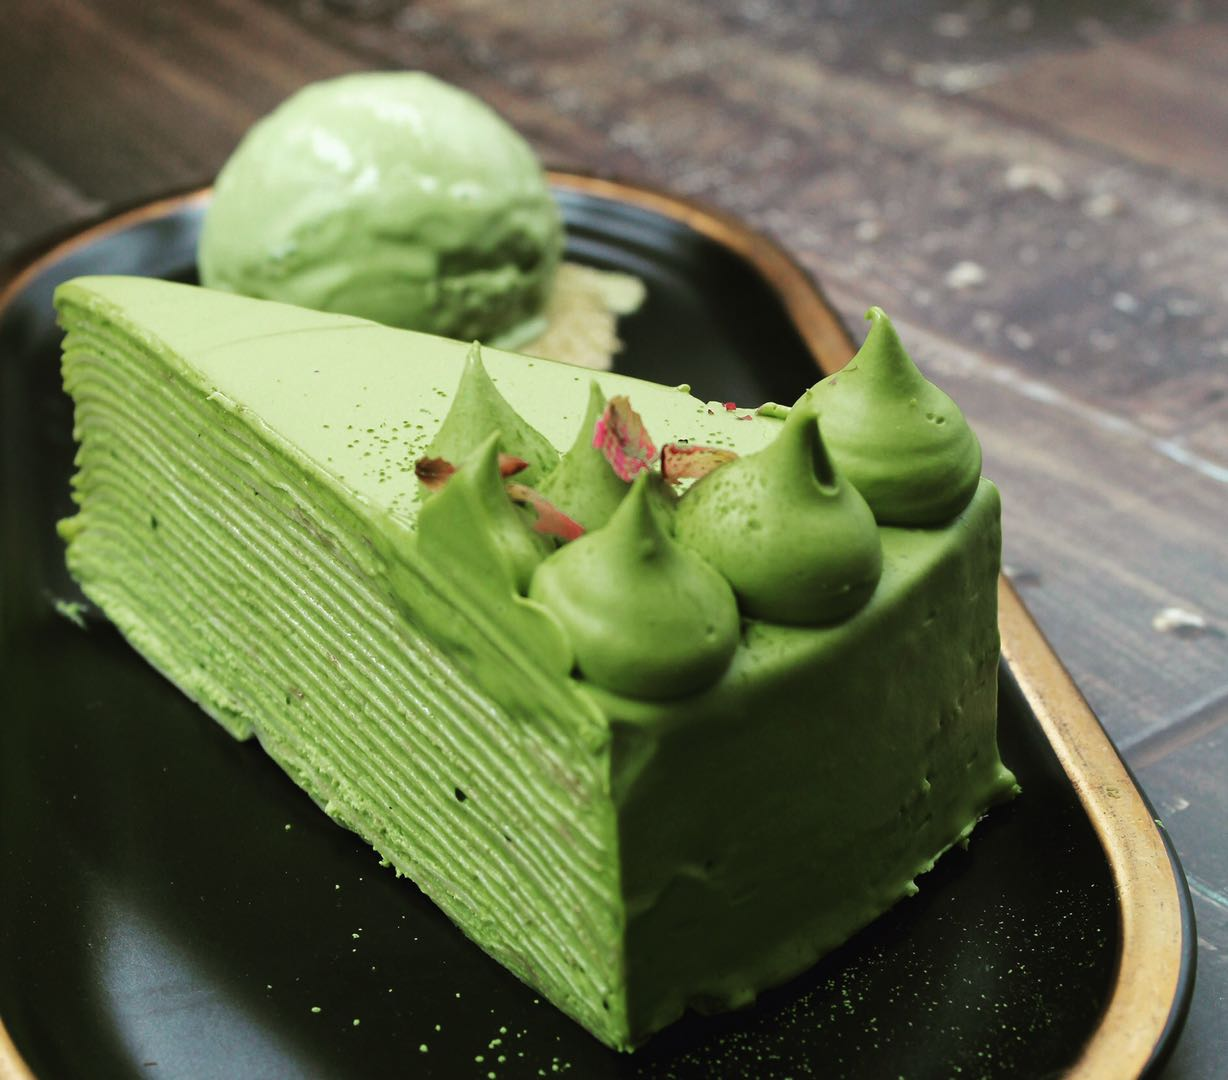 green cake made of thin layers